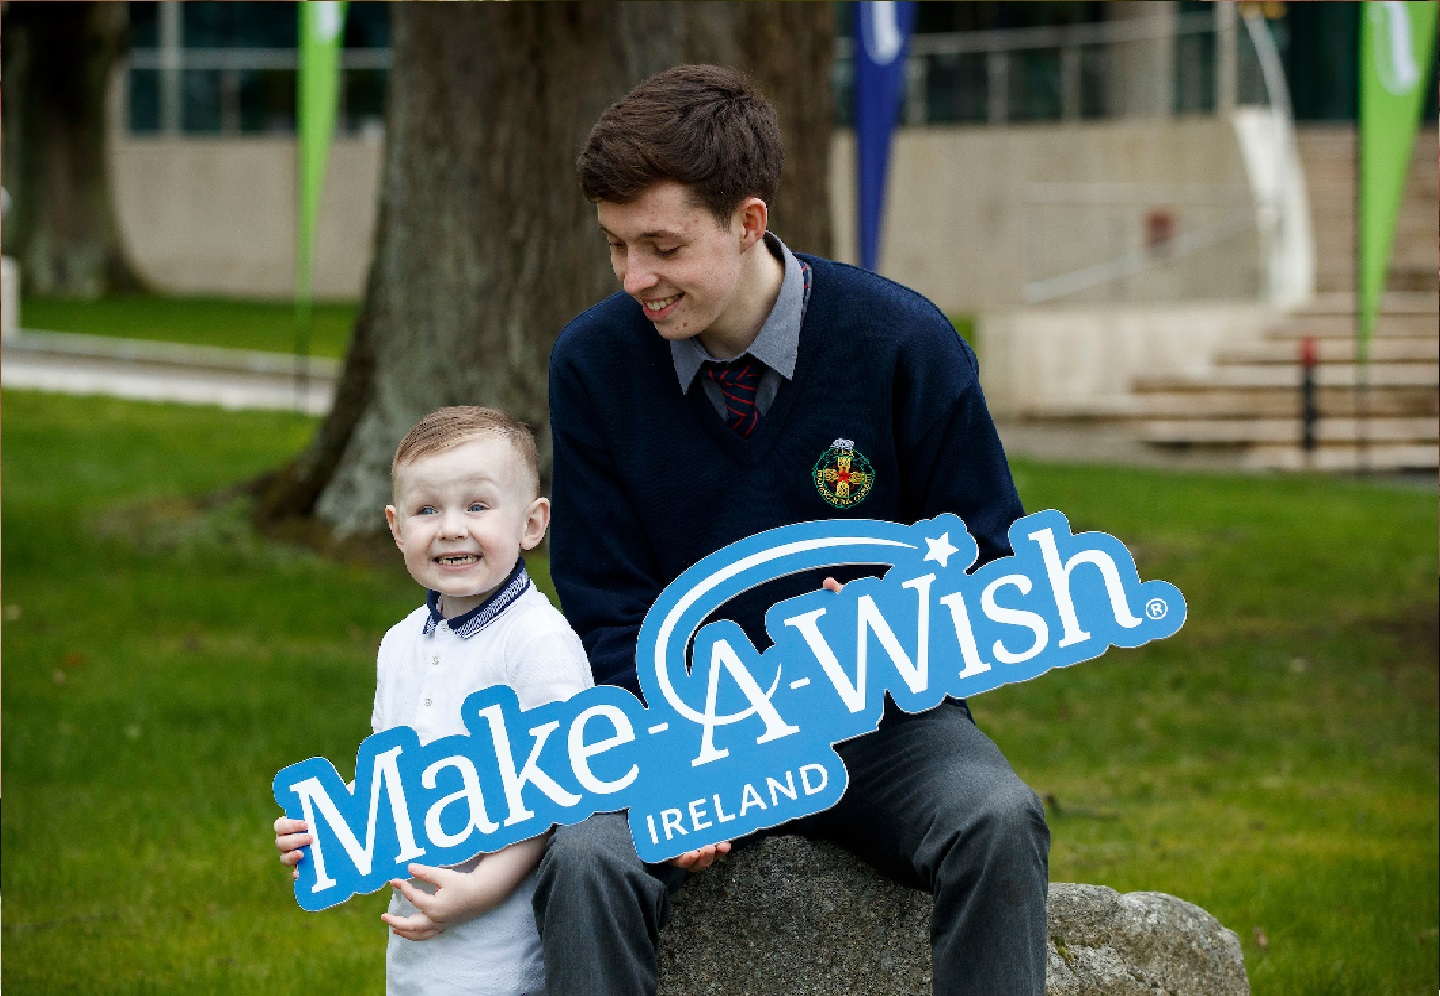 Winning schools of Make-A-Wish Ireland's 'Kids for Wish Kids' Awards announced